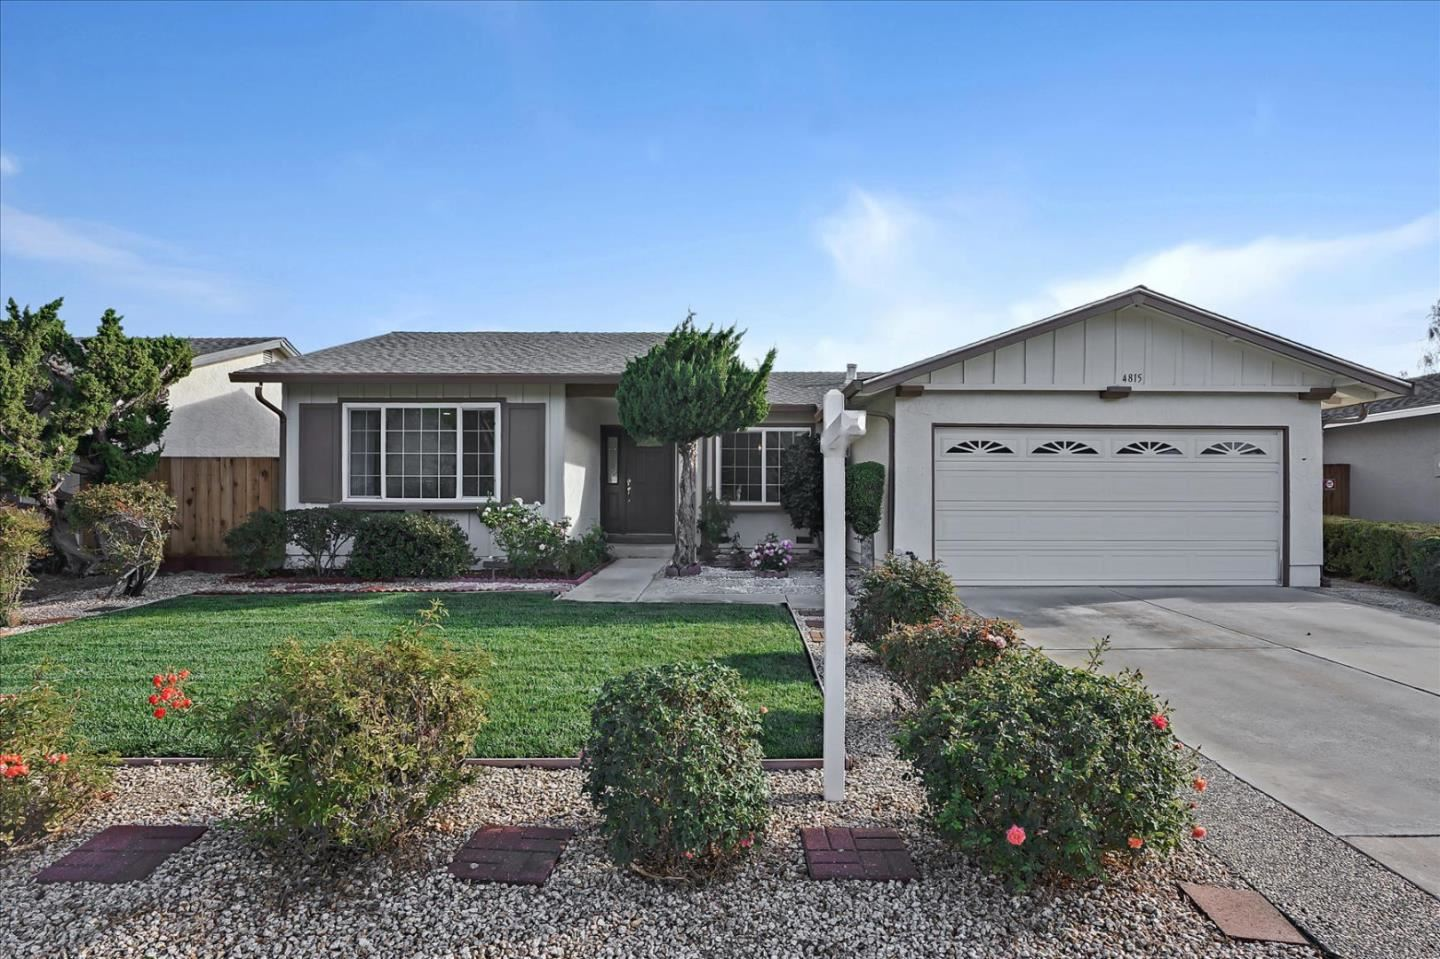 Photo for 4815 Pinemont Drive, CAMPBELL, CA 95008 (MLS # ML81866796)